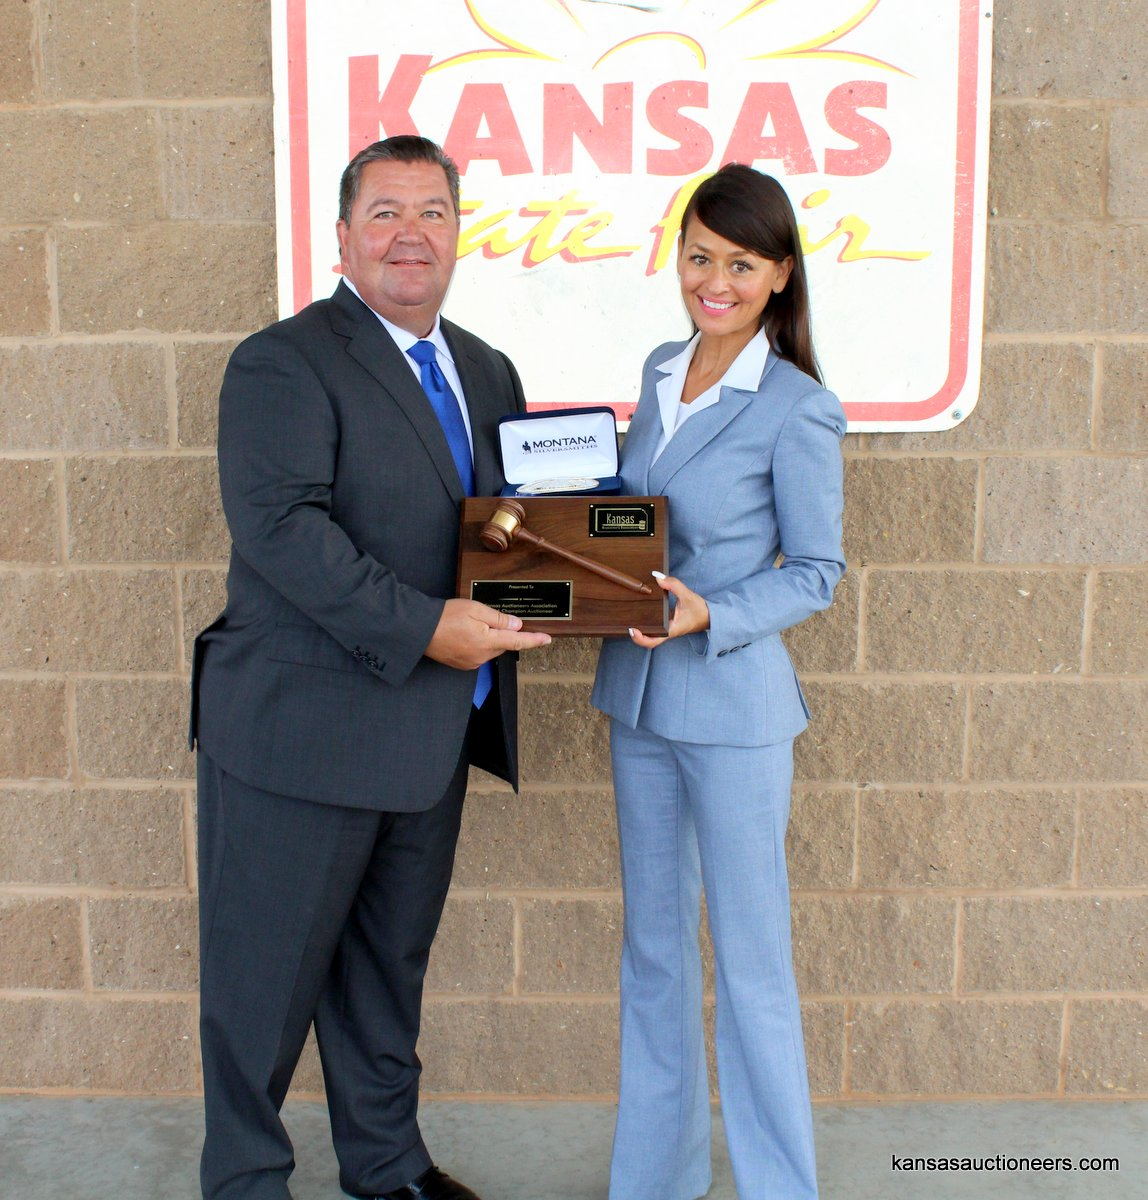 Lenny Mullin (2015 Champion) presents Yve Rojas with her 2016 Kansas Auctioneer Championship belt buckle and plaque.